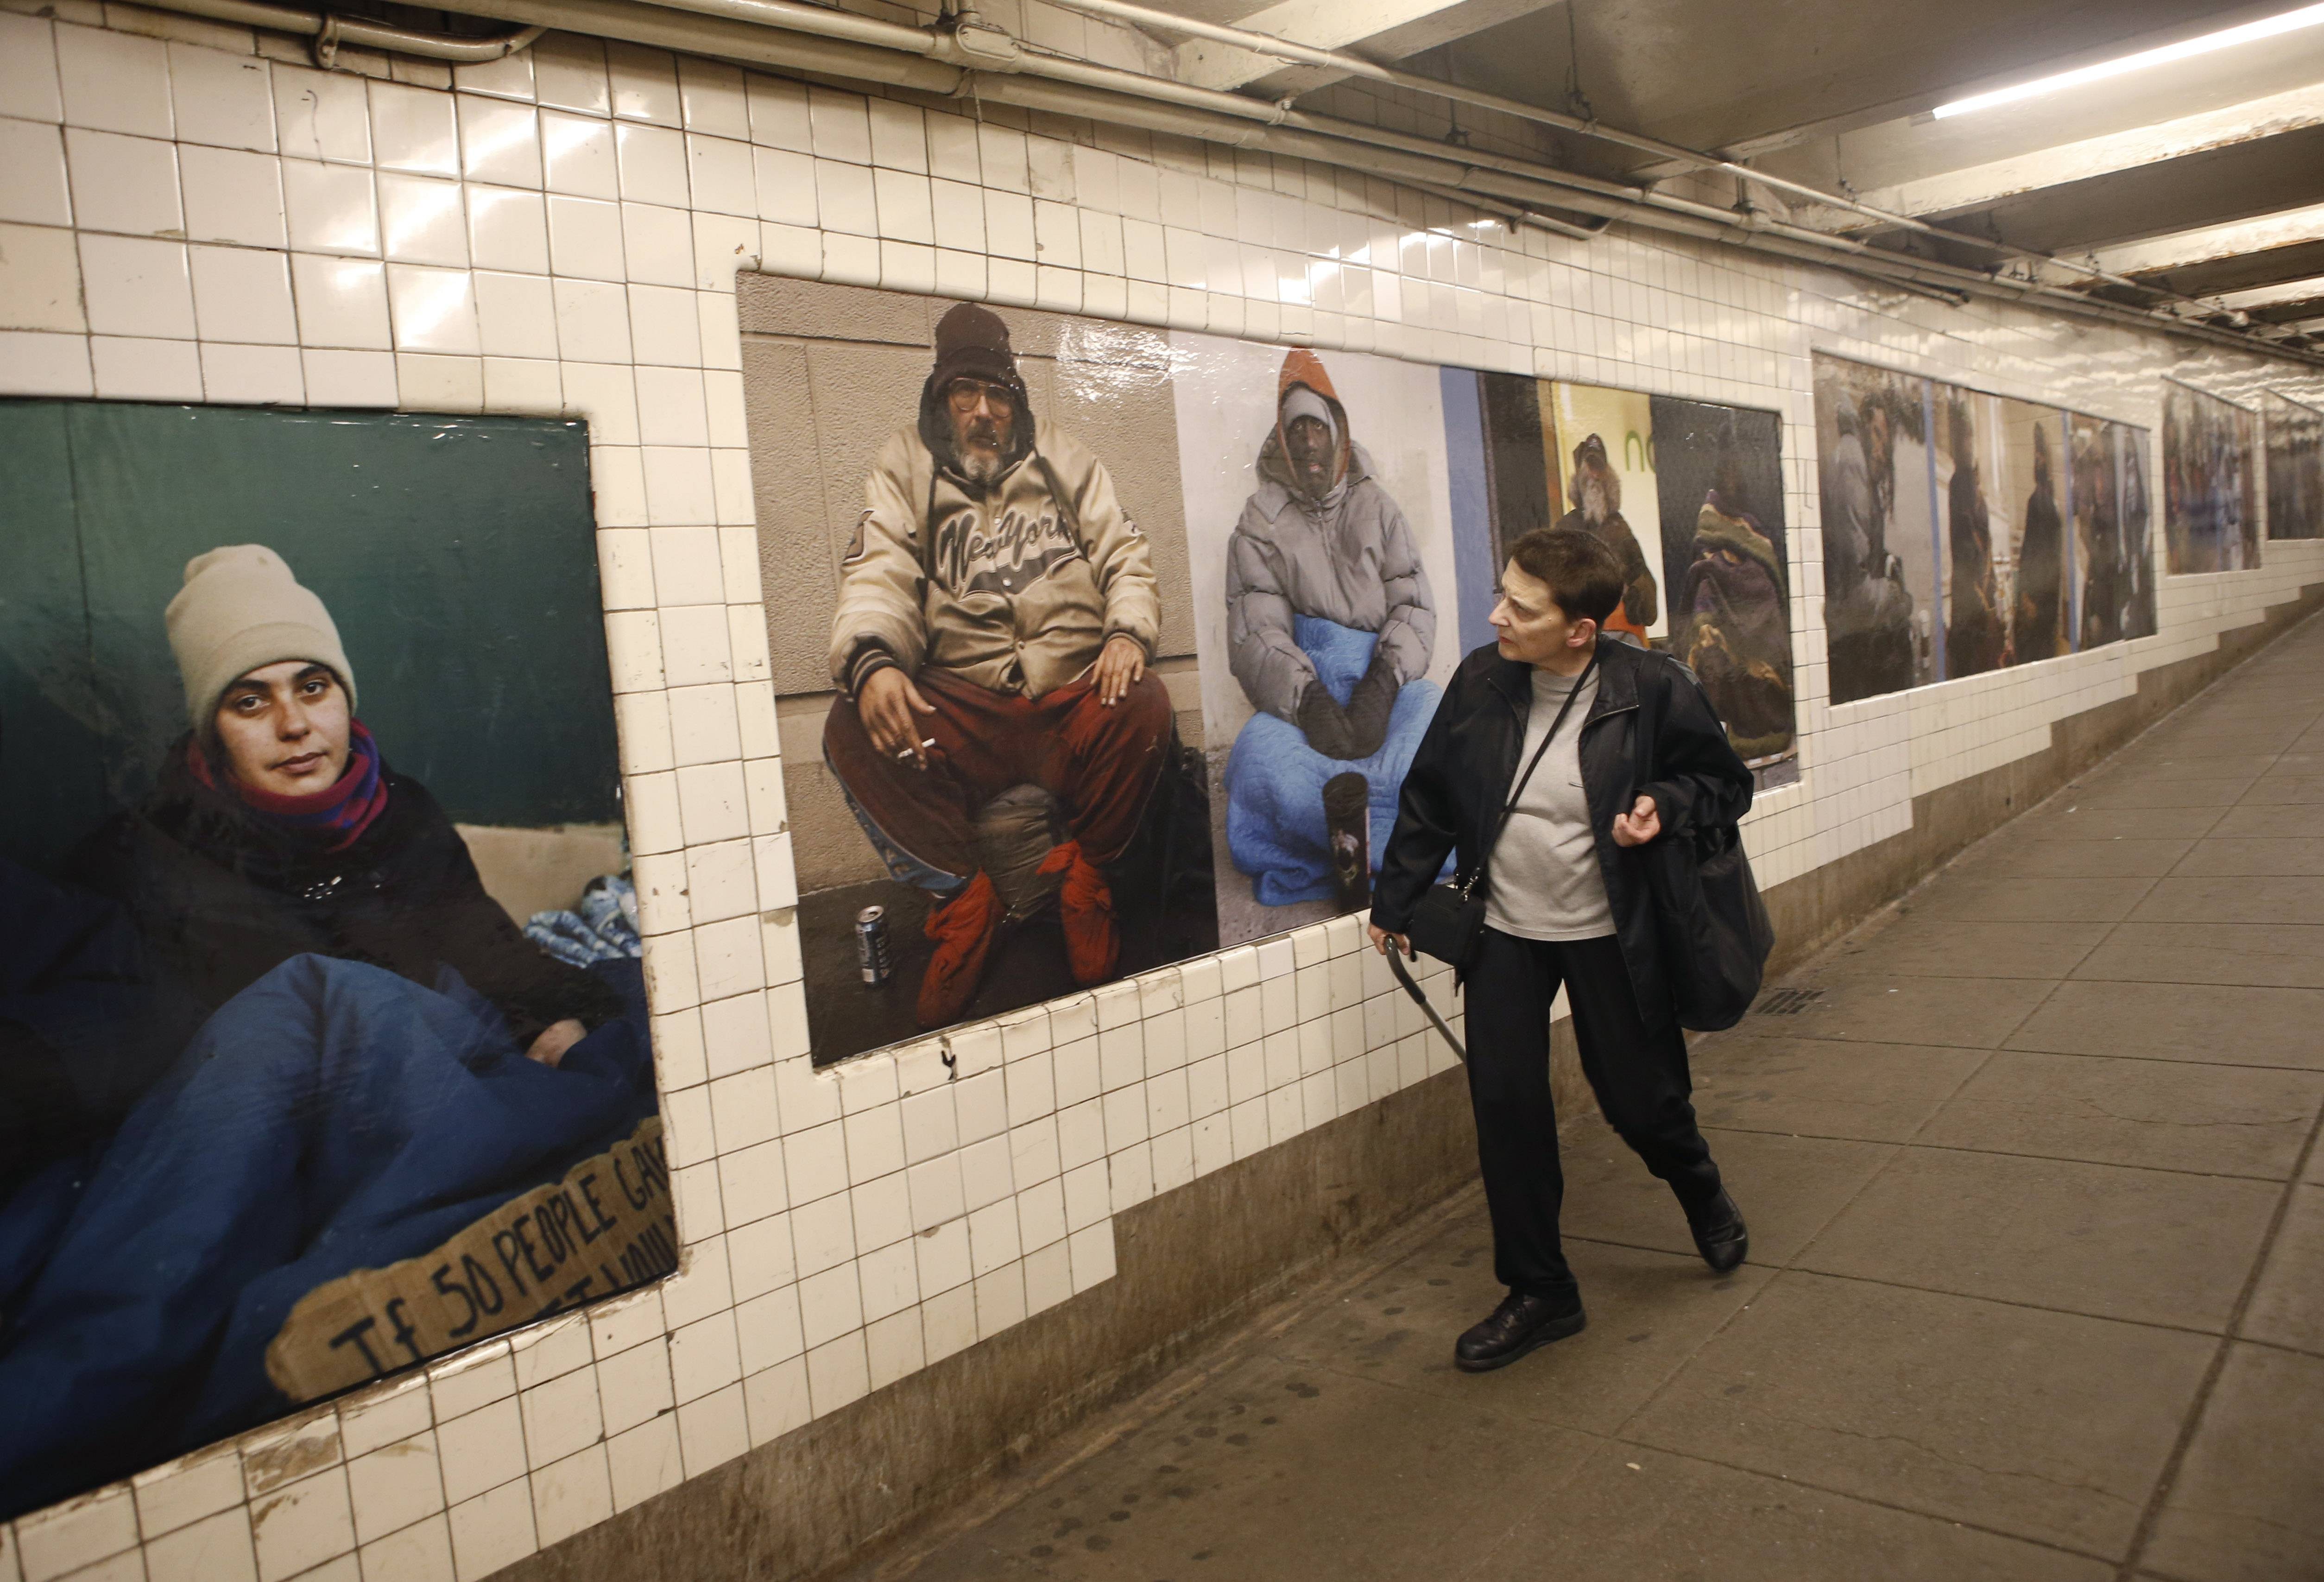 A woman cranes her neck as she passes by some of photographer Andres Serrano's portraits of homeless New Yorkers currently on display at the West 4th Street subway station in New York. Serrano chose to show his portraits in some of the very places his unassuming subjects often populate — a subway station, a park and a church.